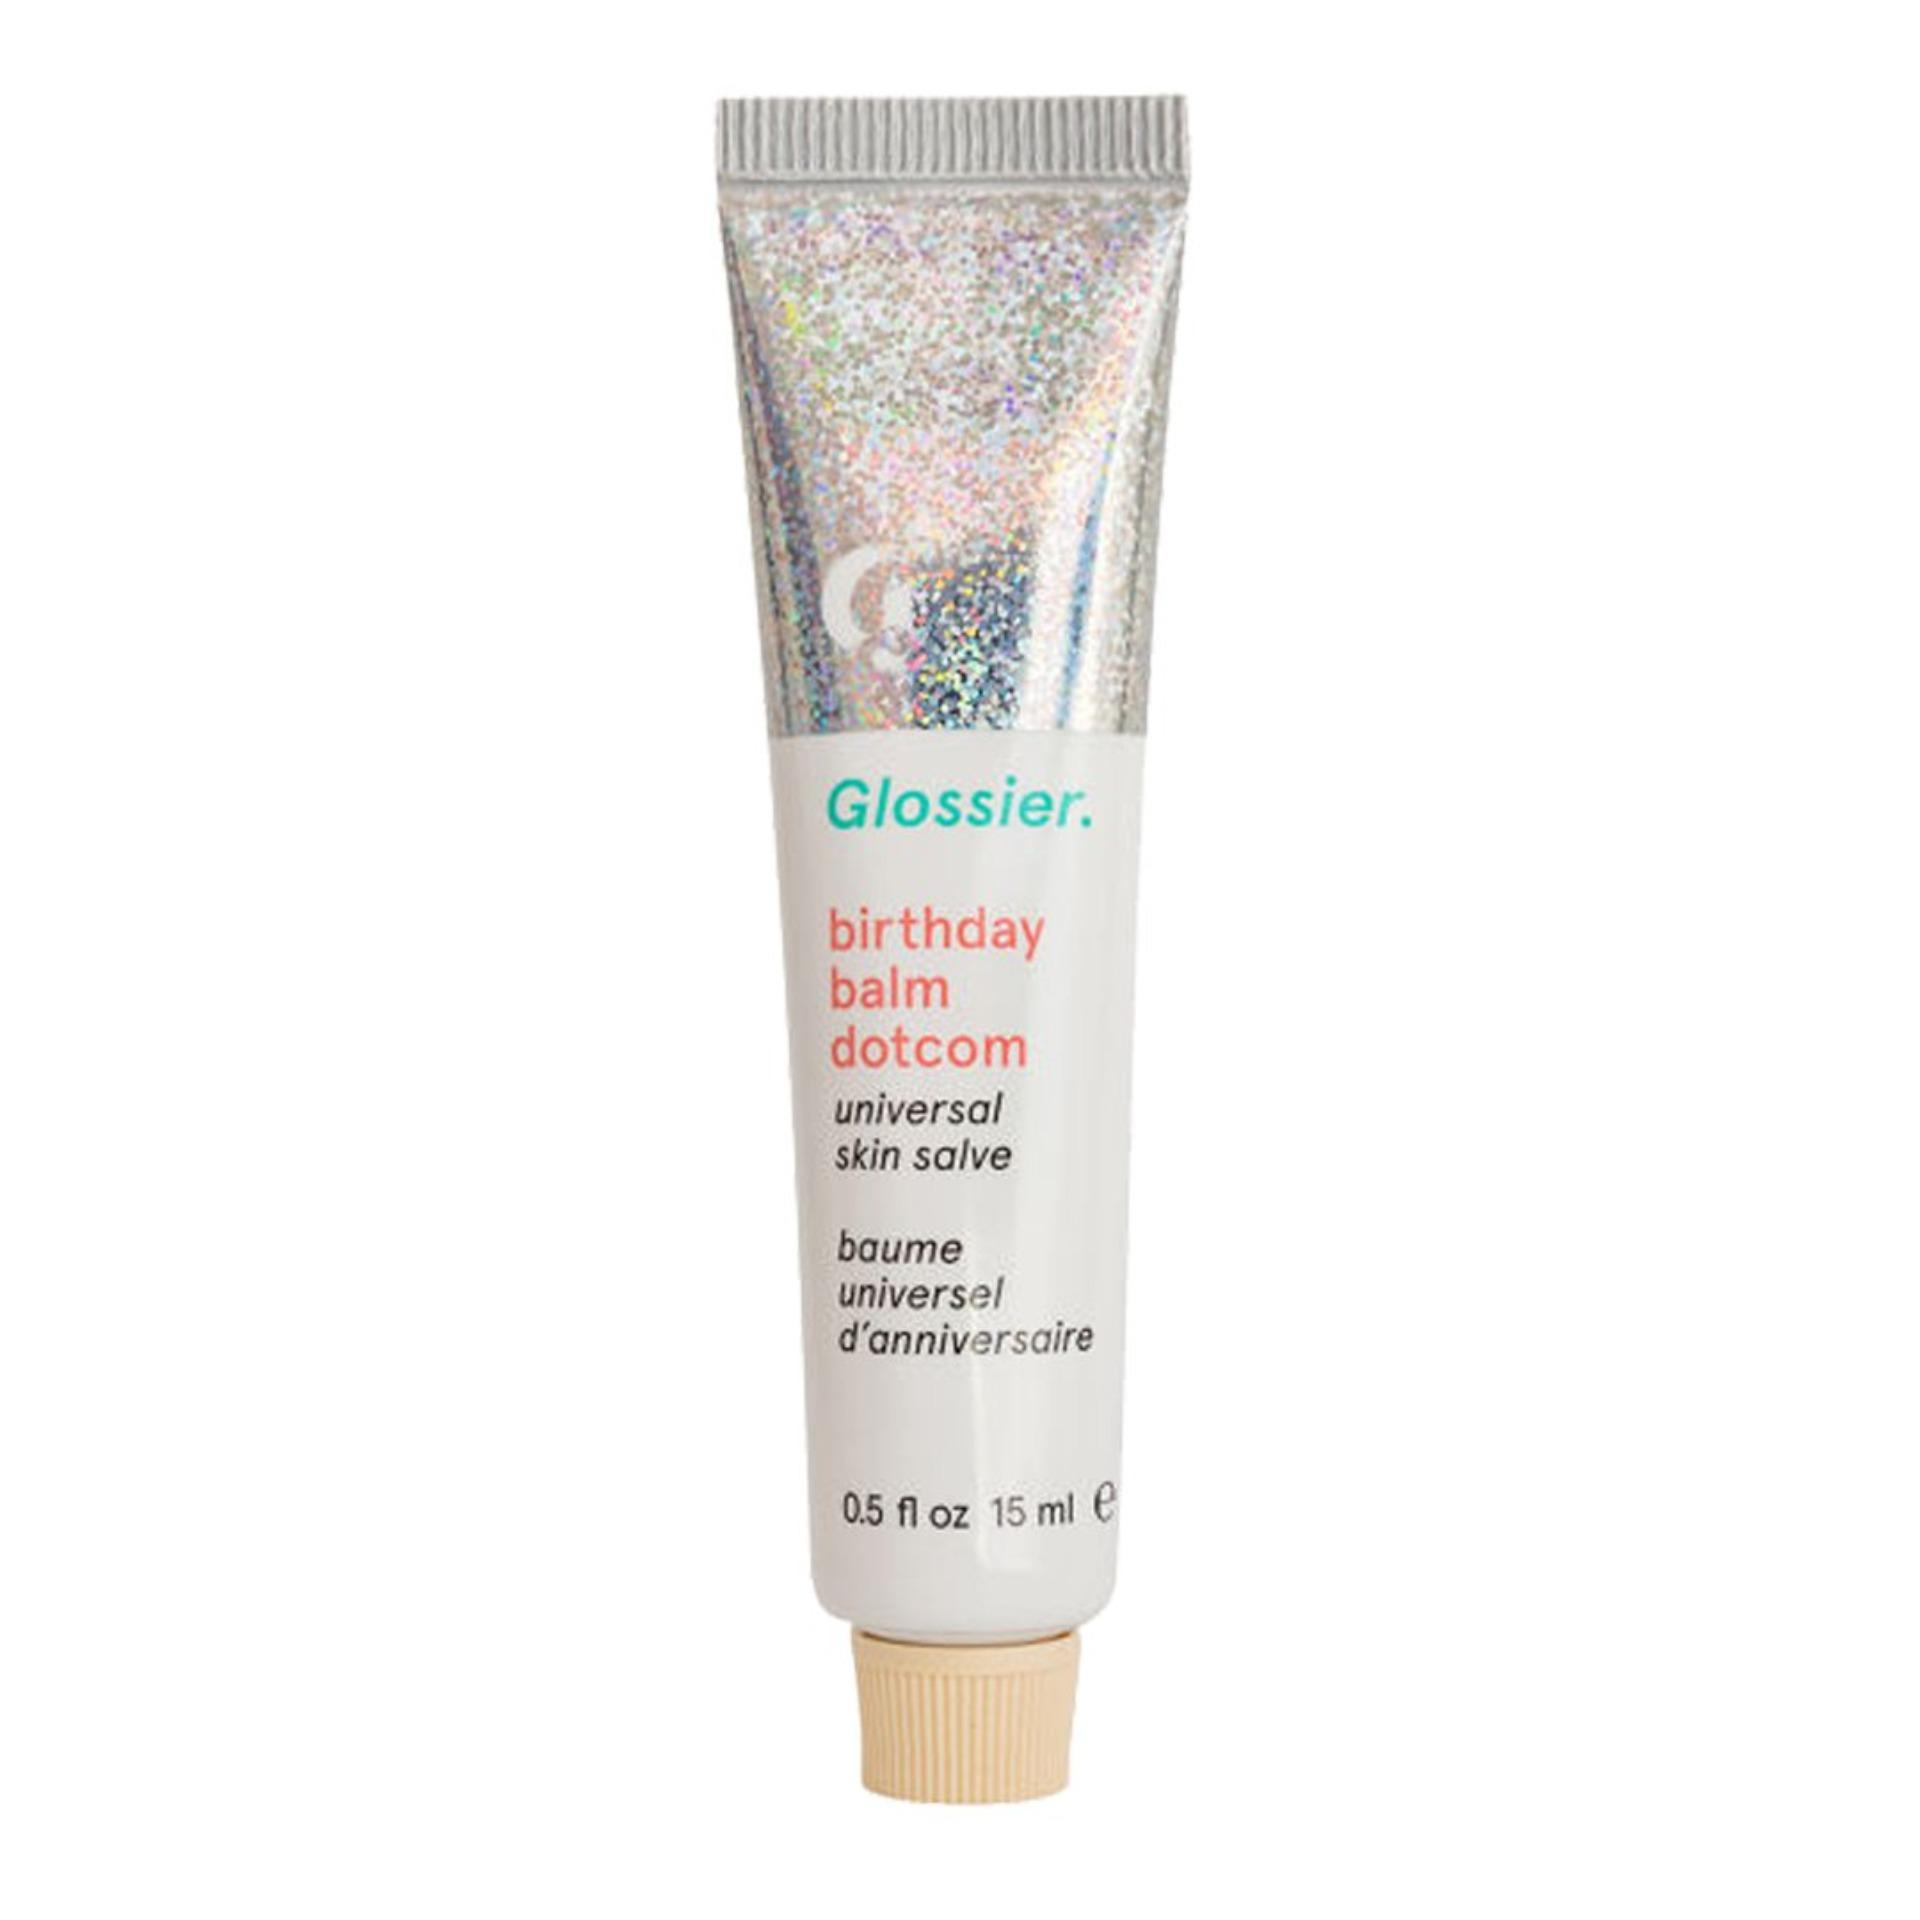 Glossier Balm Dotcom 15ml (Birthday) Philippines